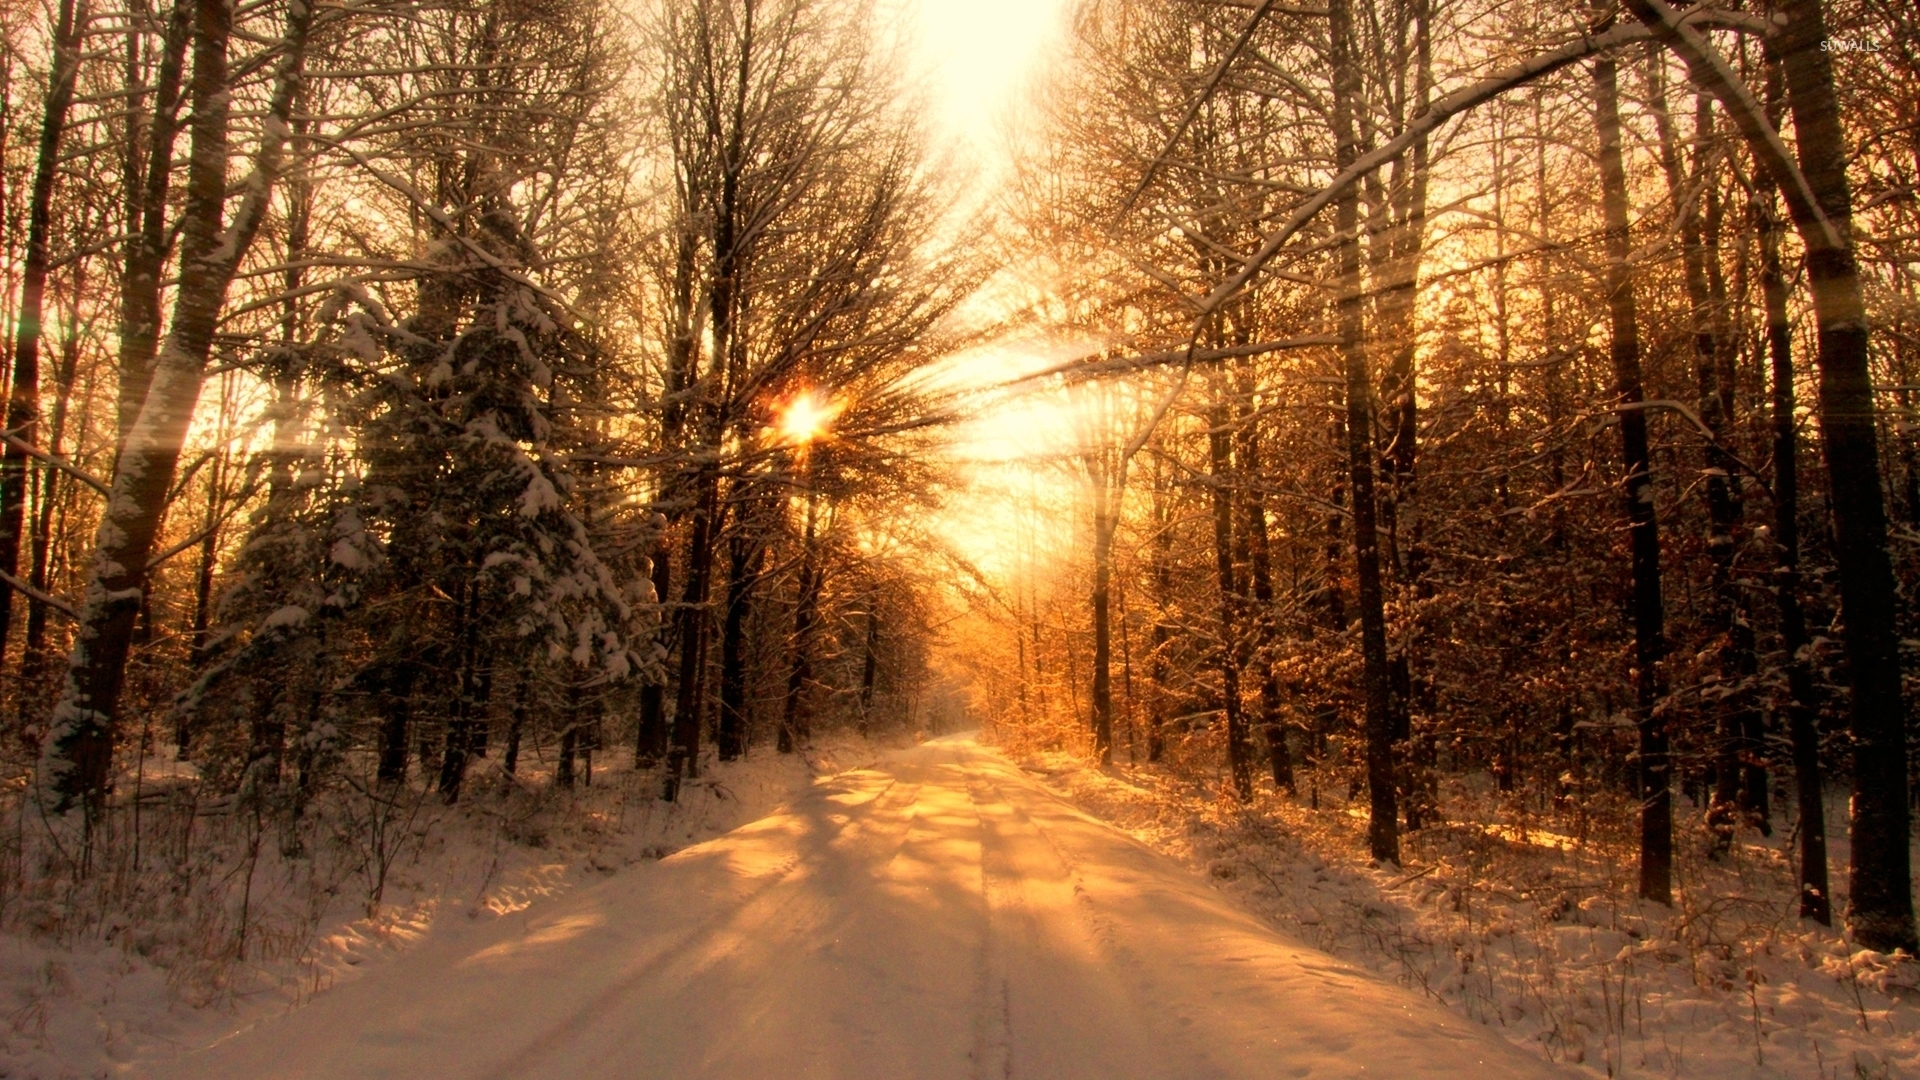 Sun Warming The Snowy Forest Wallpaper Nature Wallpapers